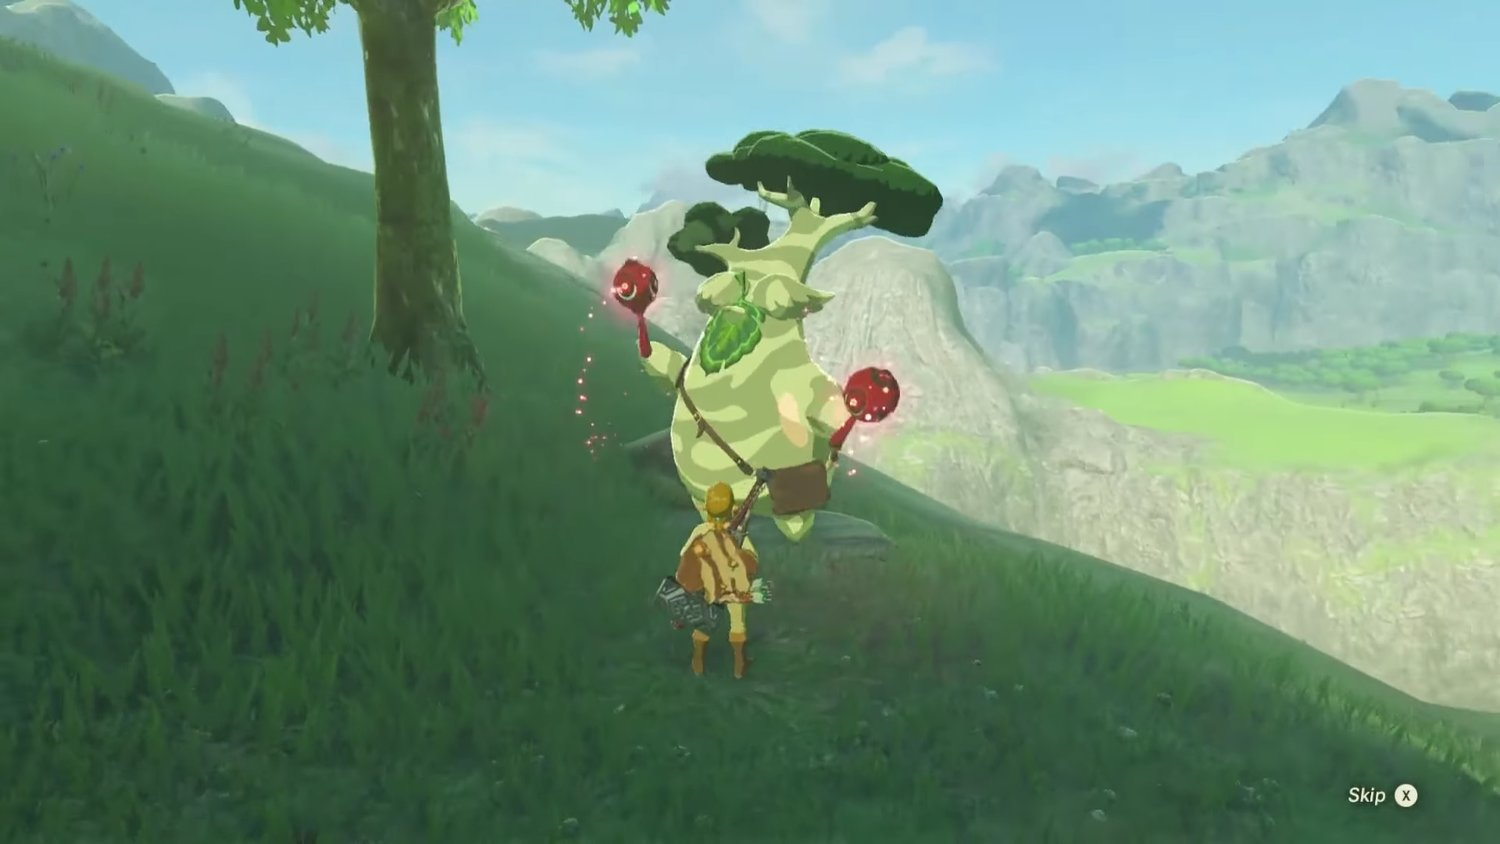 You Get A Weird Reward For Collecting All 900 Korok Seeds In THE LEGEND OF ZELDA: BREATH OF THE WILD